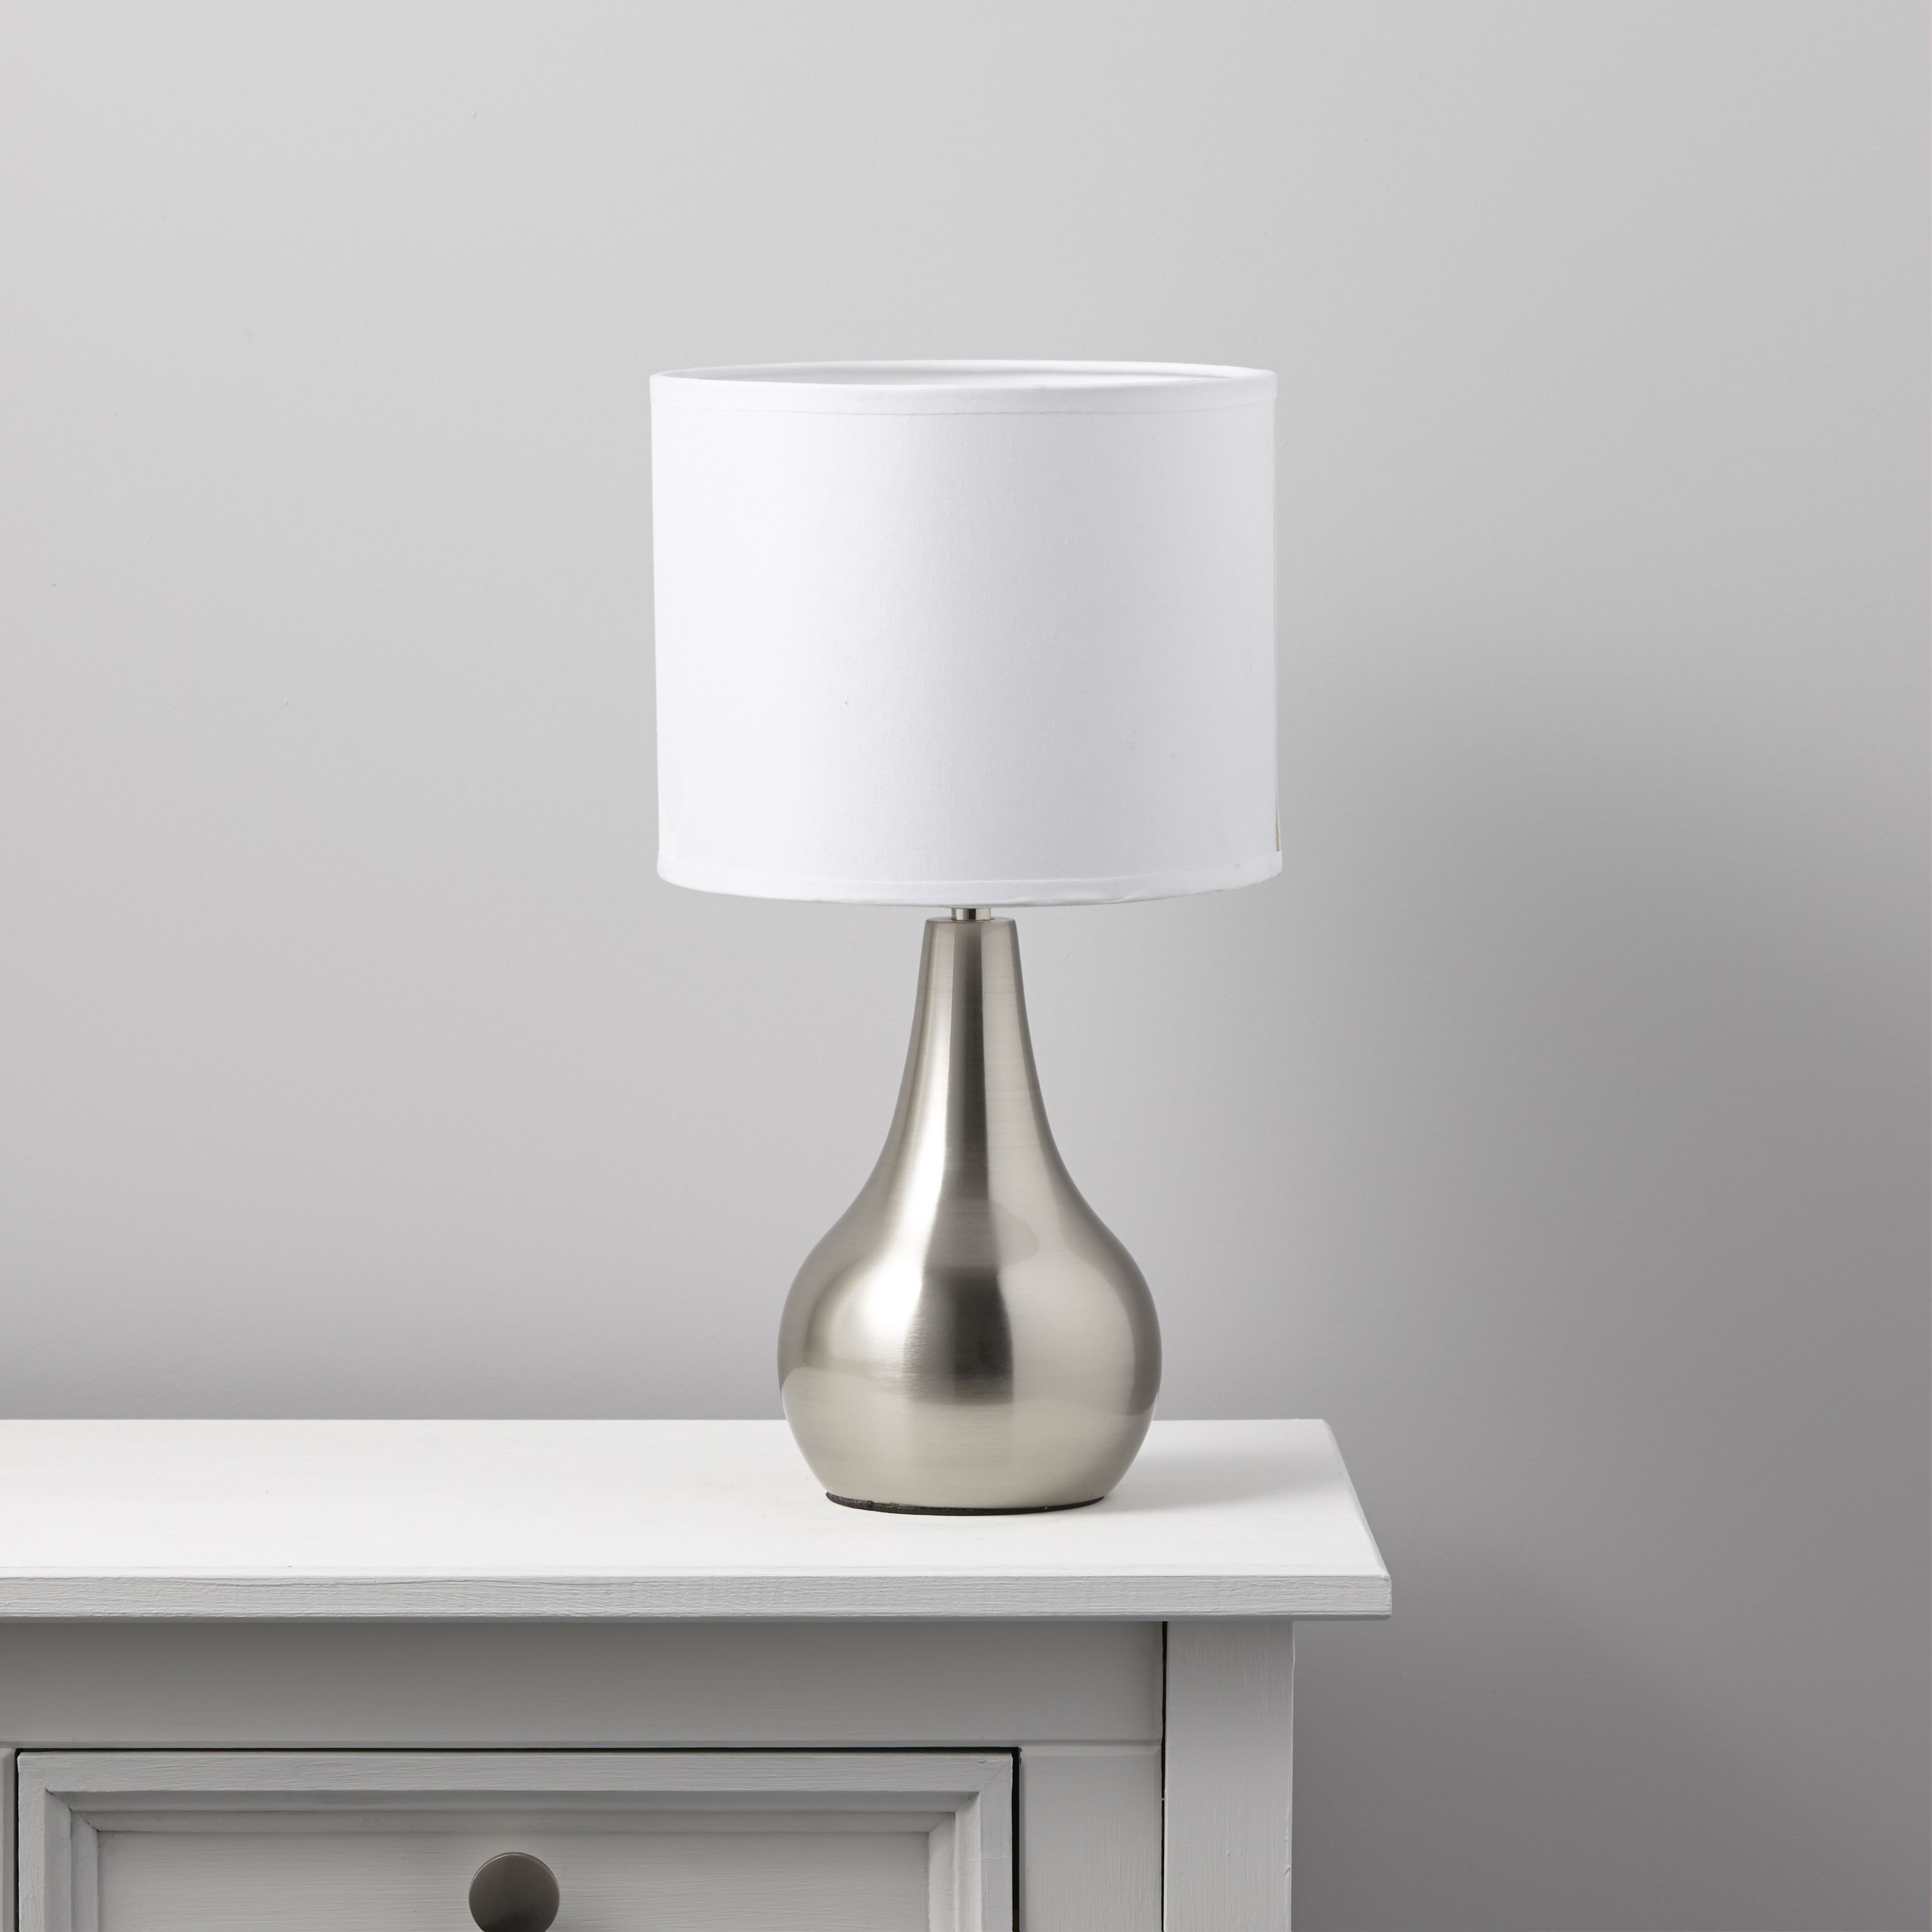 Ramsey White Stainless Steel Effect Table Lamp